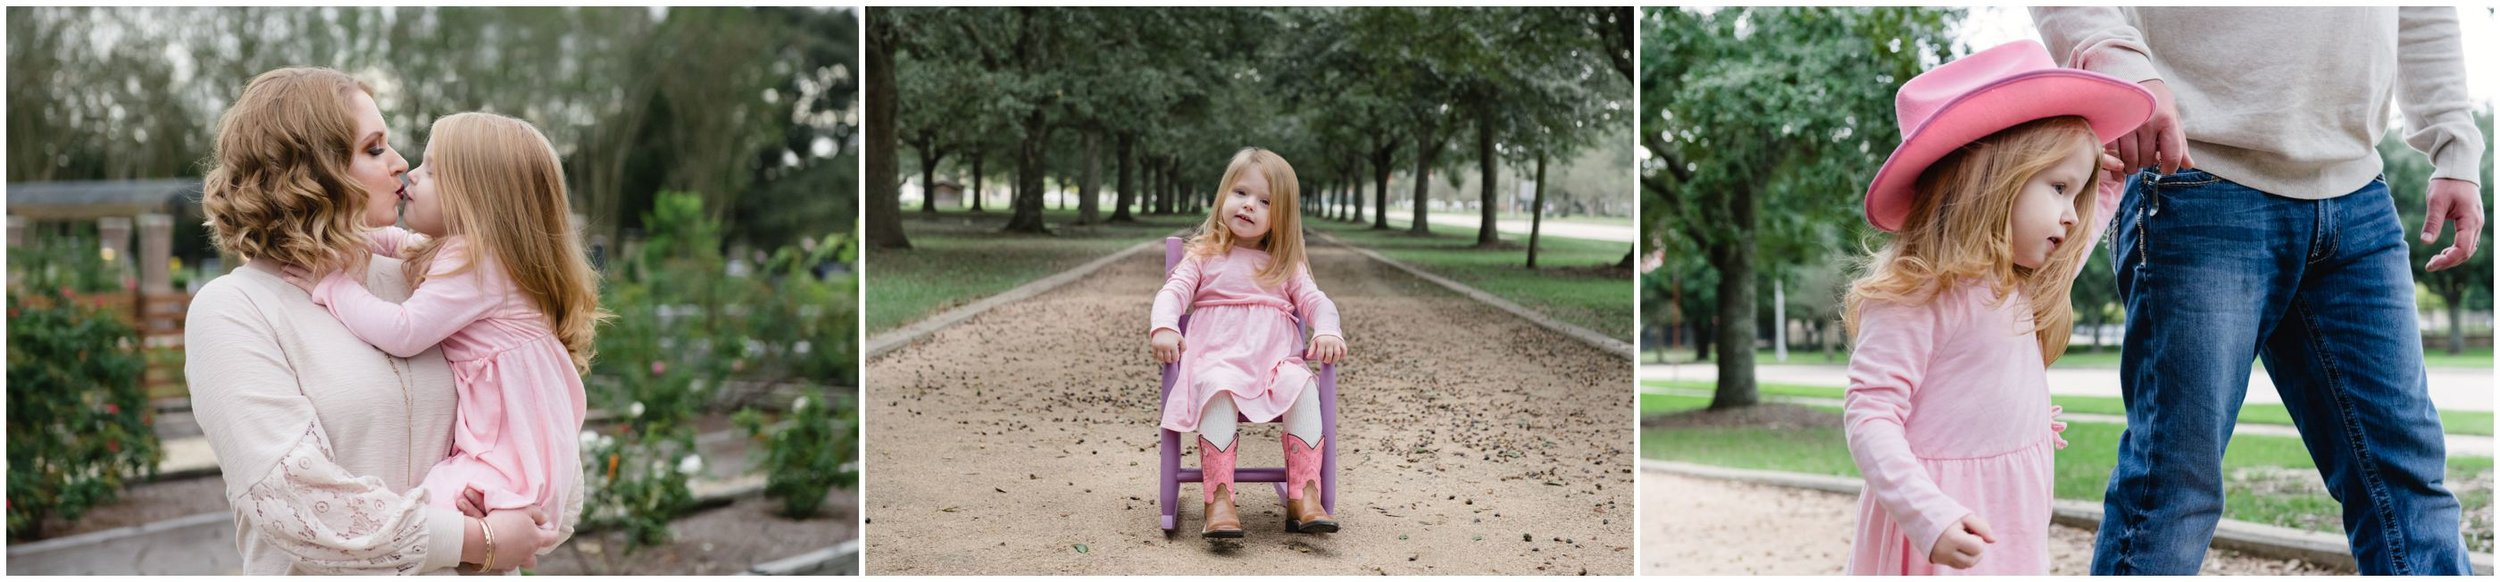 baton-rouge-family-photographer